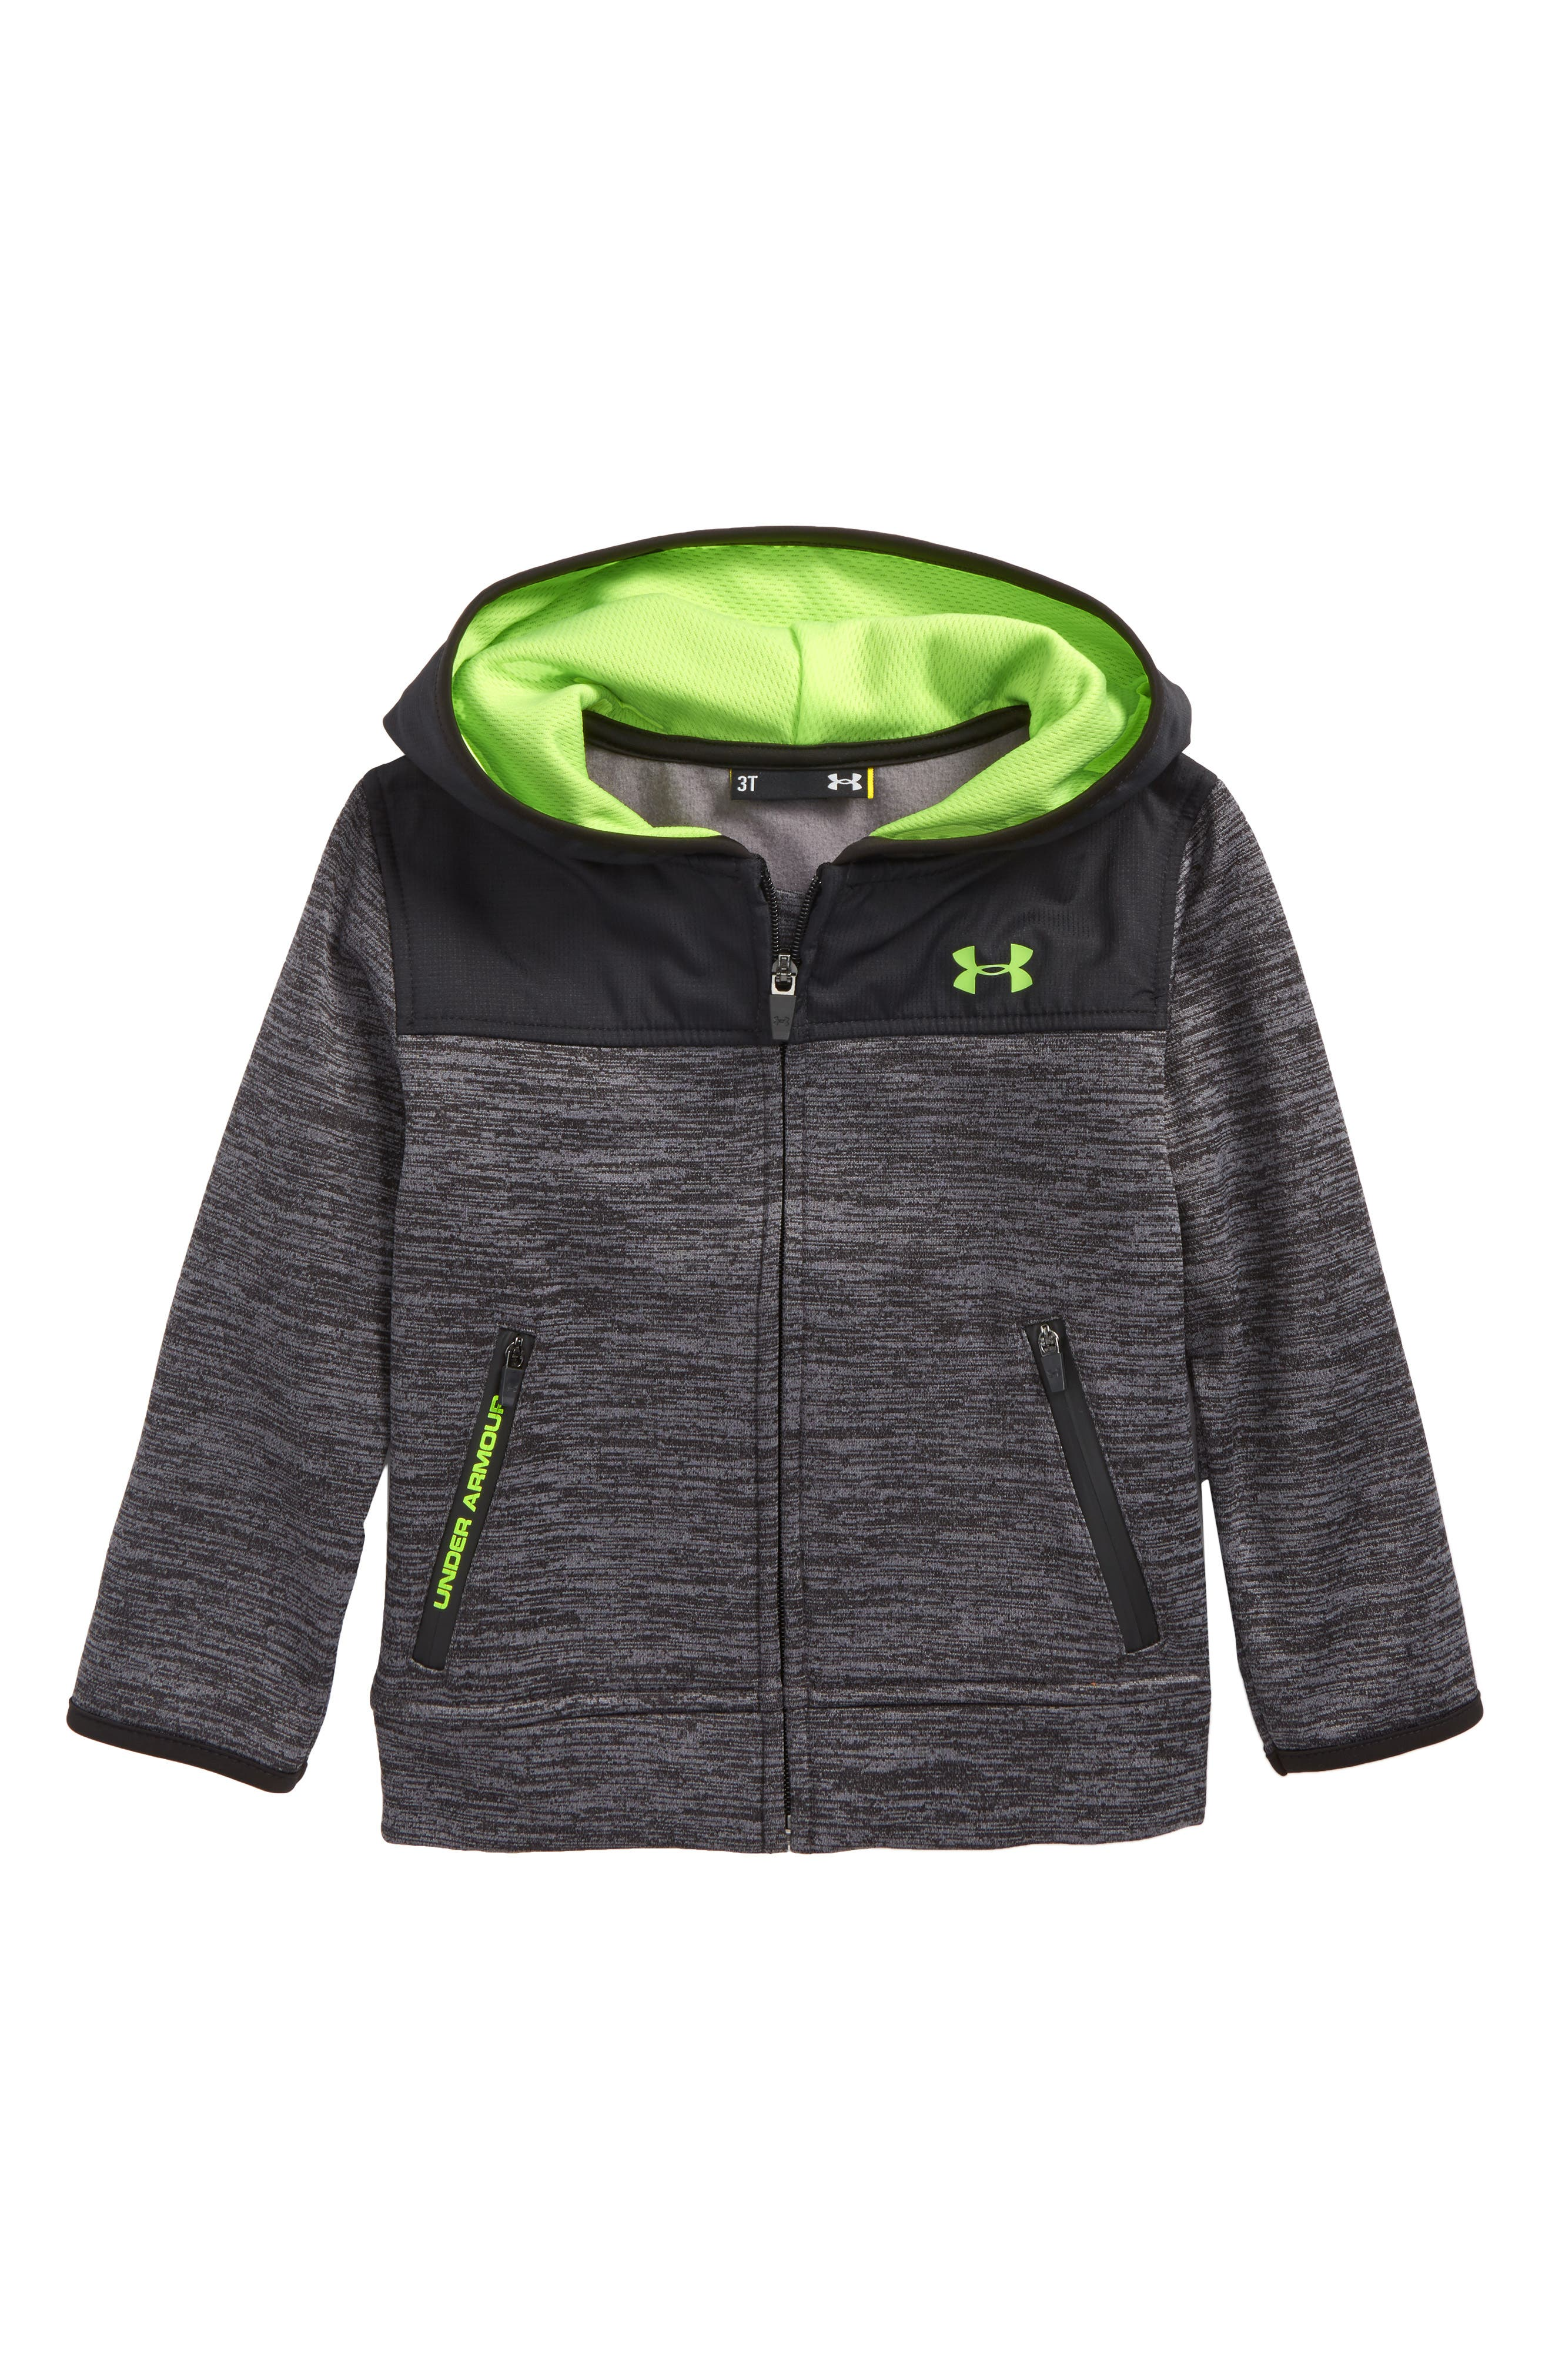 Main Image - Under Armour Altitude Hoodie (Toddler Boys & Little Boys)